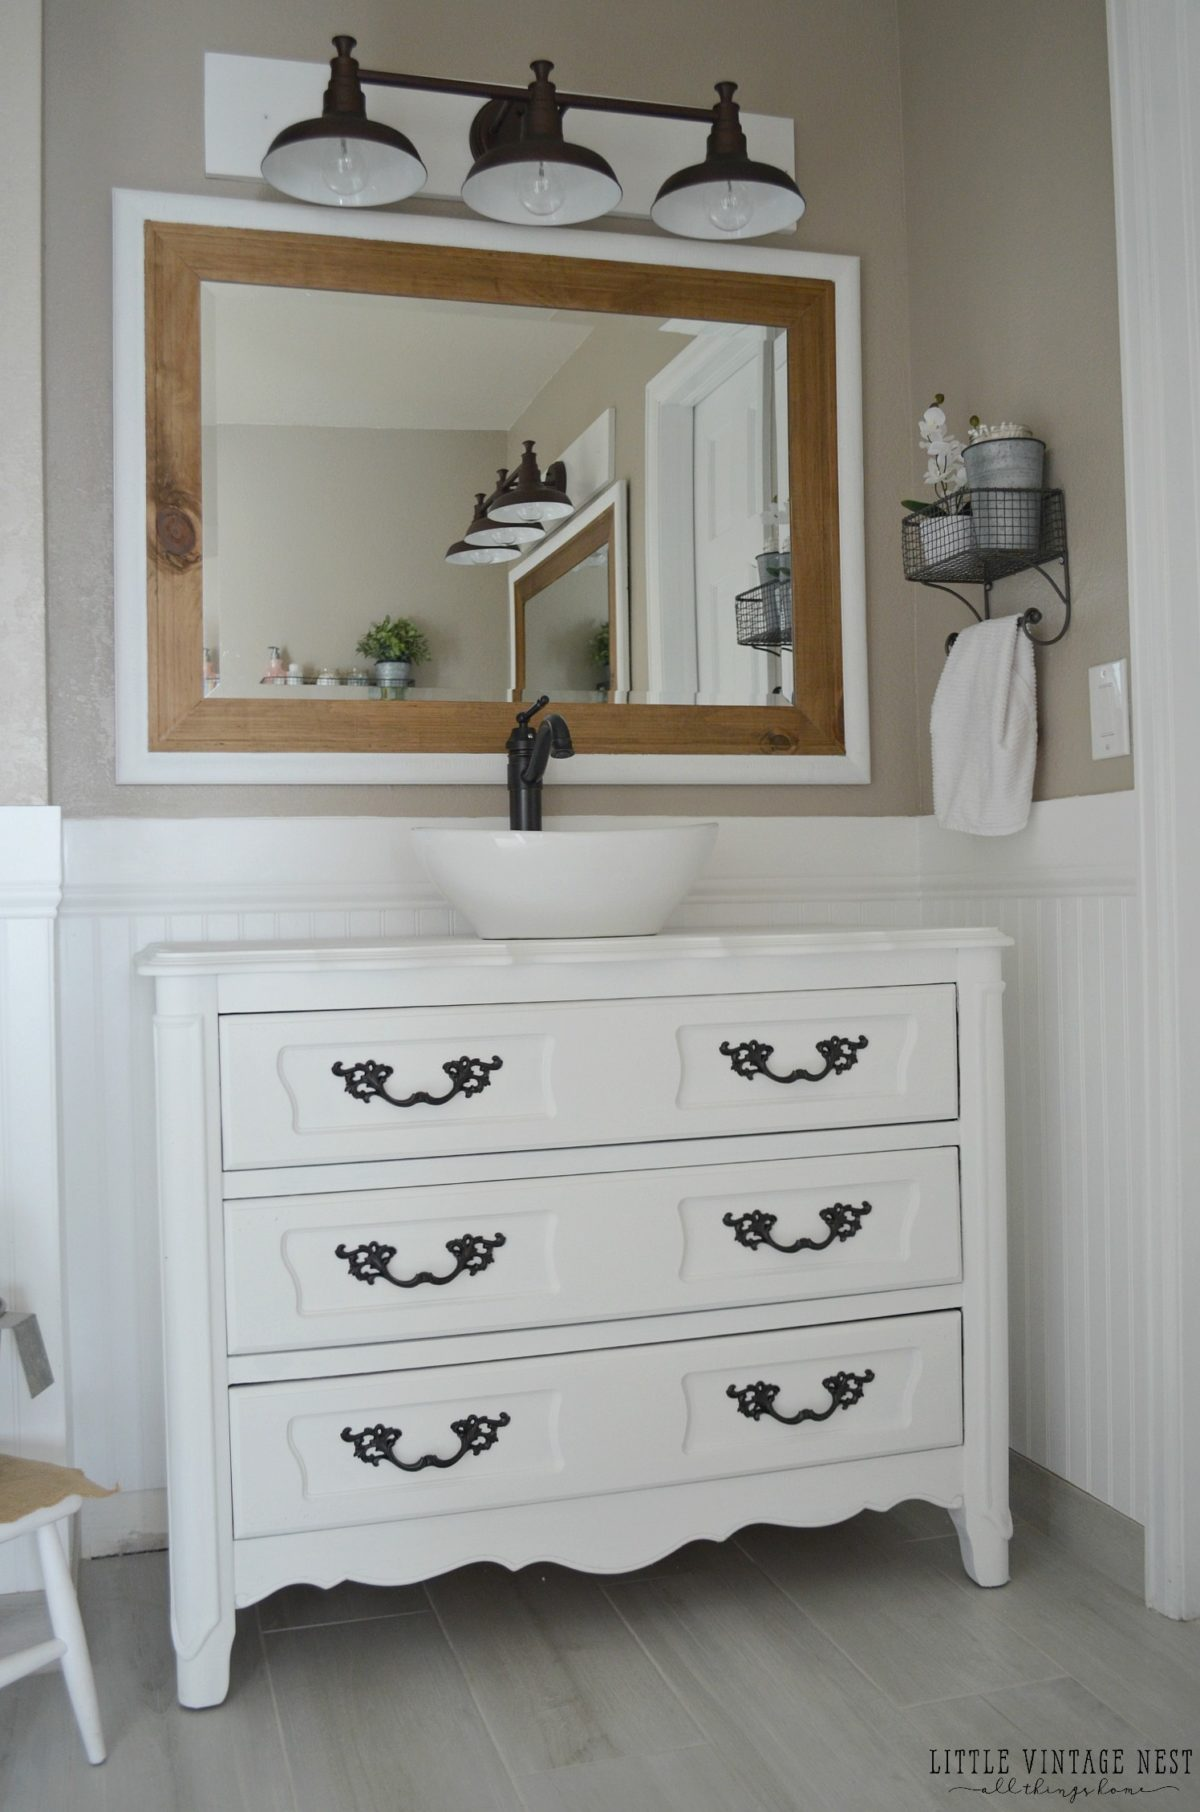 Bathroom Vanity Farmhouse farmhouse master bathroom reveal - little vintage nest